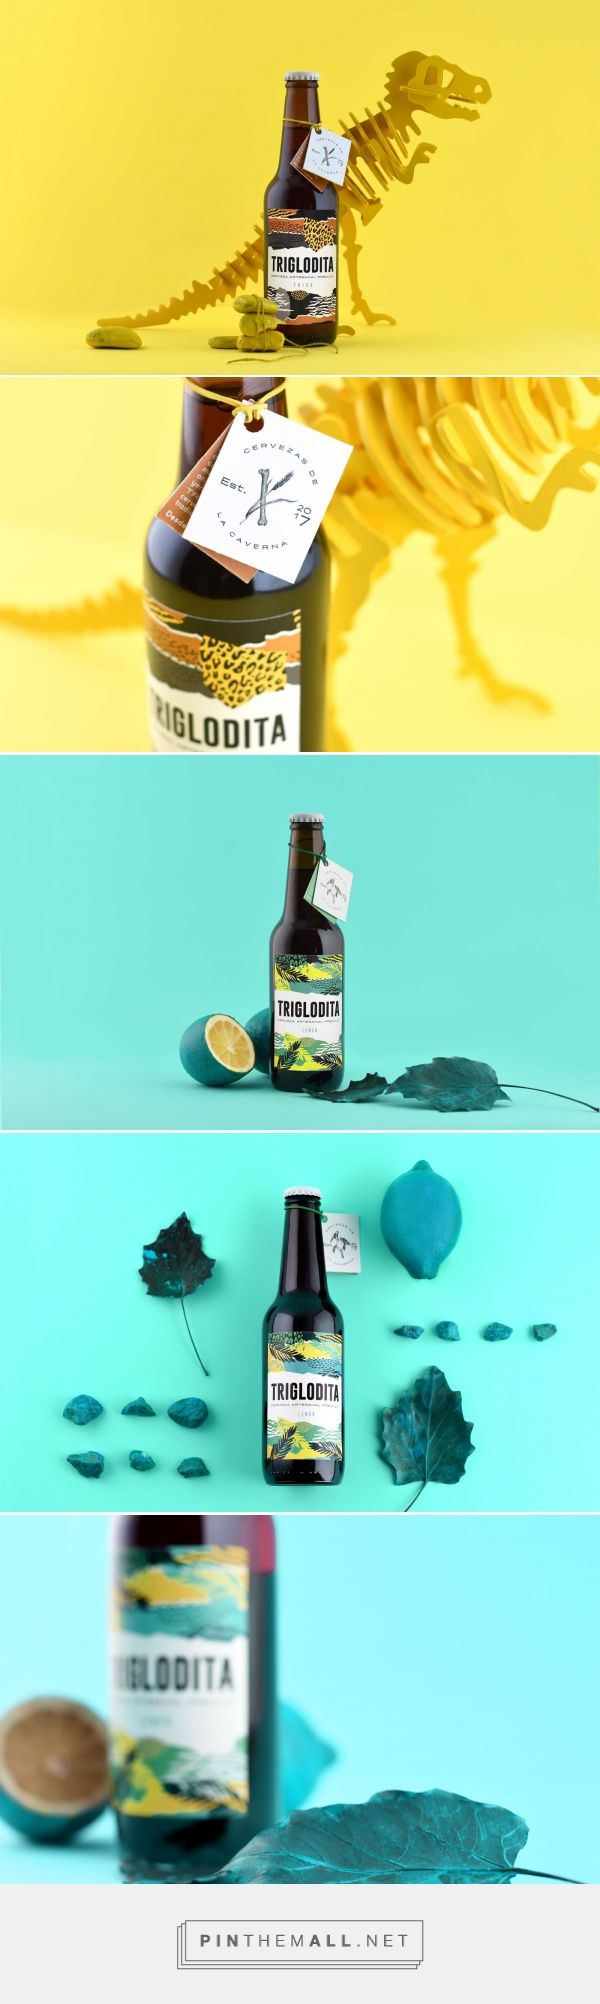 Triglodita - Packaging of the World - Creative Package Design Gallery - http://www.packagingoftheworld.com/2017/10/triglodita.html